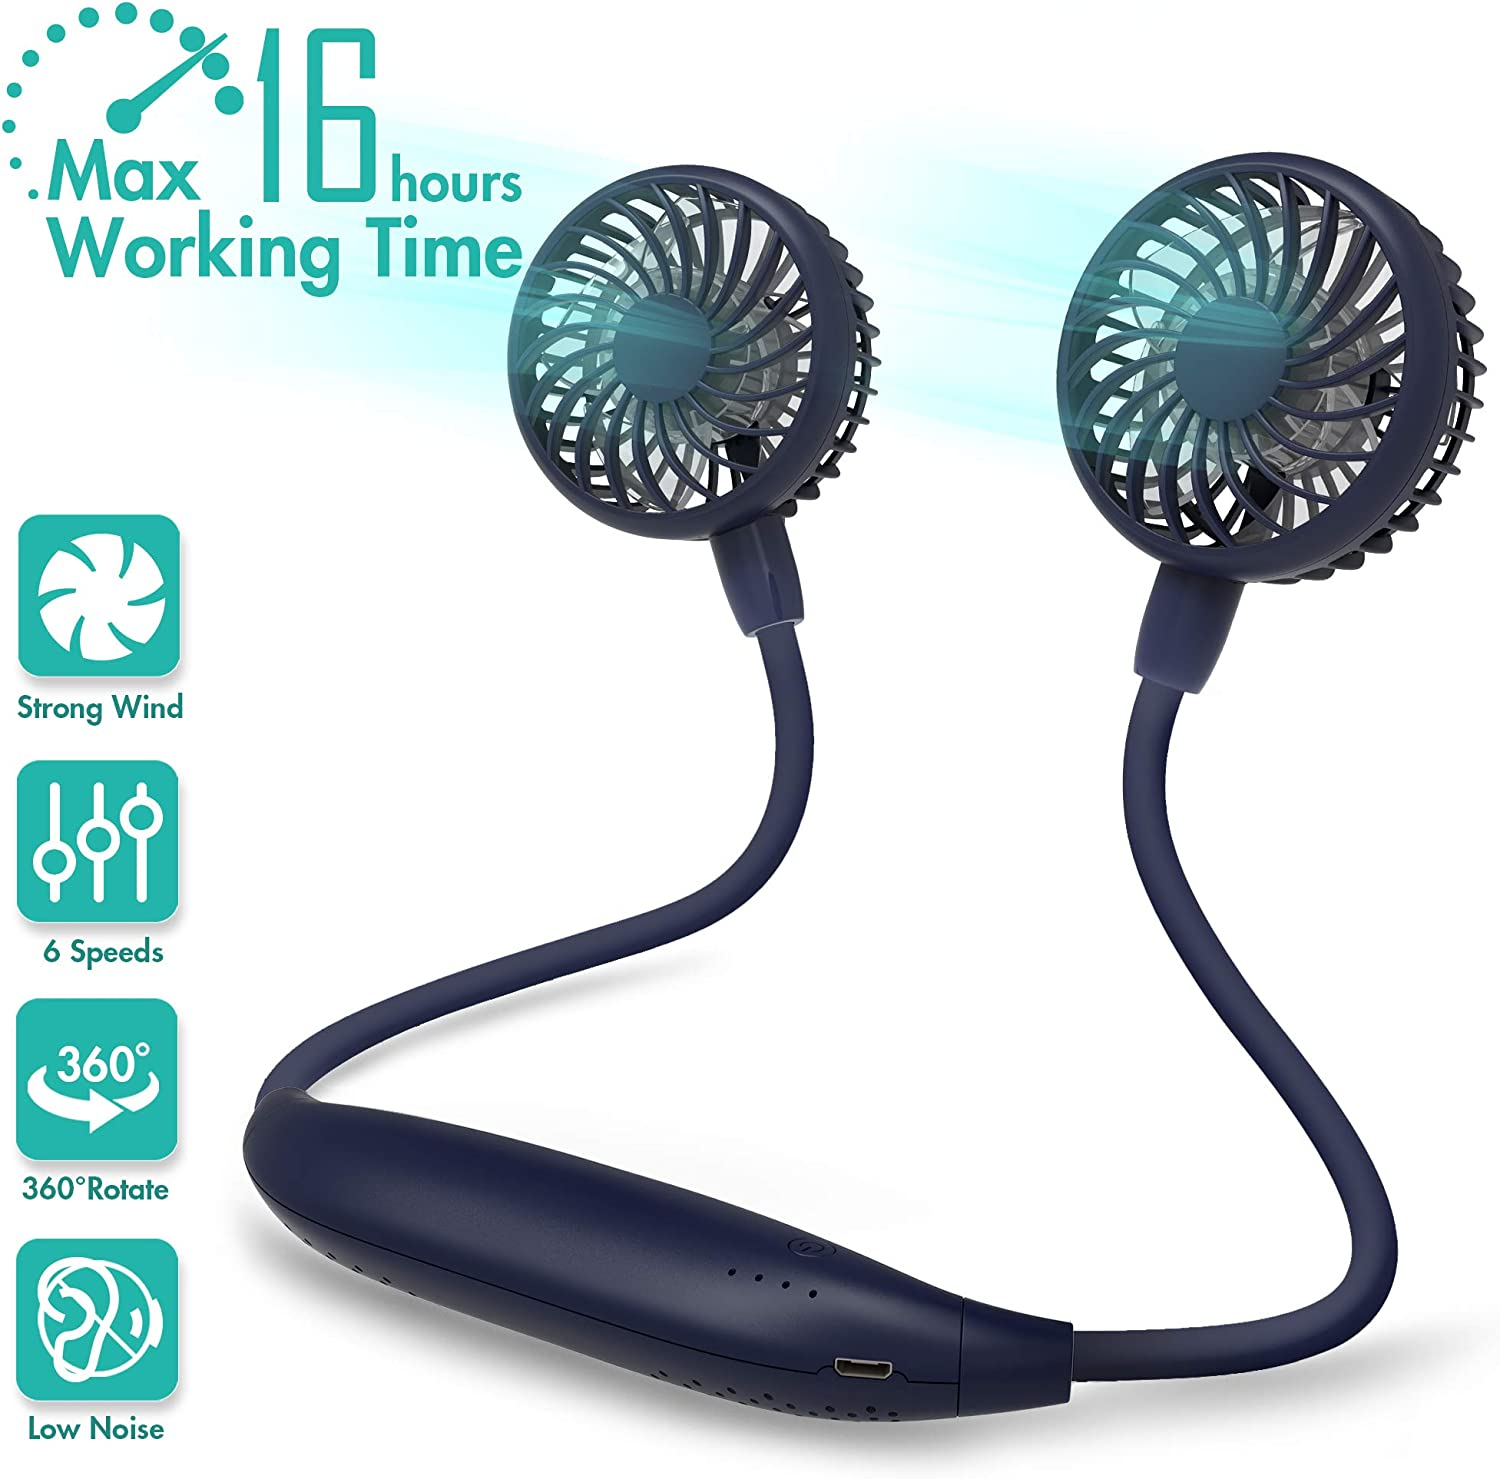 Neck Fan 2600mah Battery Operated Neckband Fan 6-Speed Hand-Free Wearable Personal USB Fan for Hot Flashes Home Office Travel Outdoor Sports (Navy Blue)